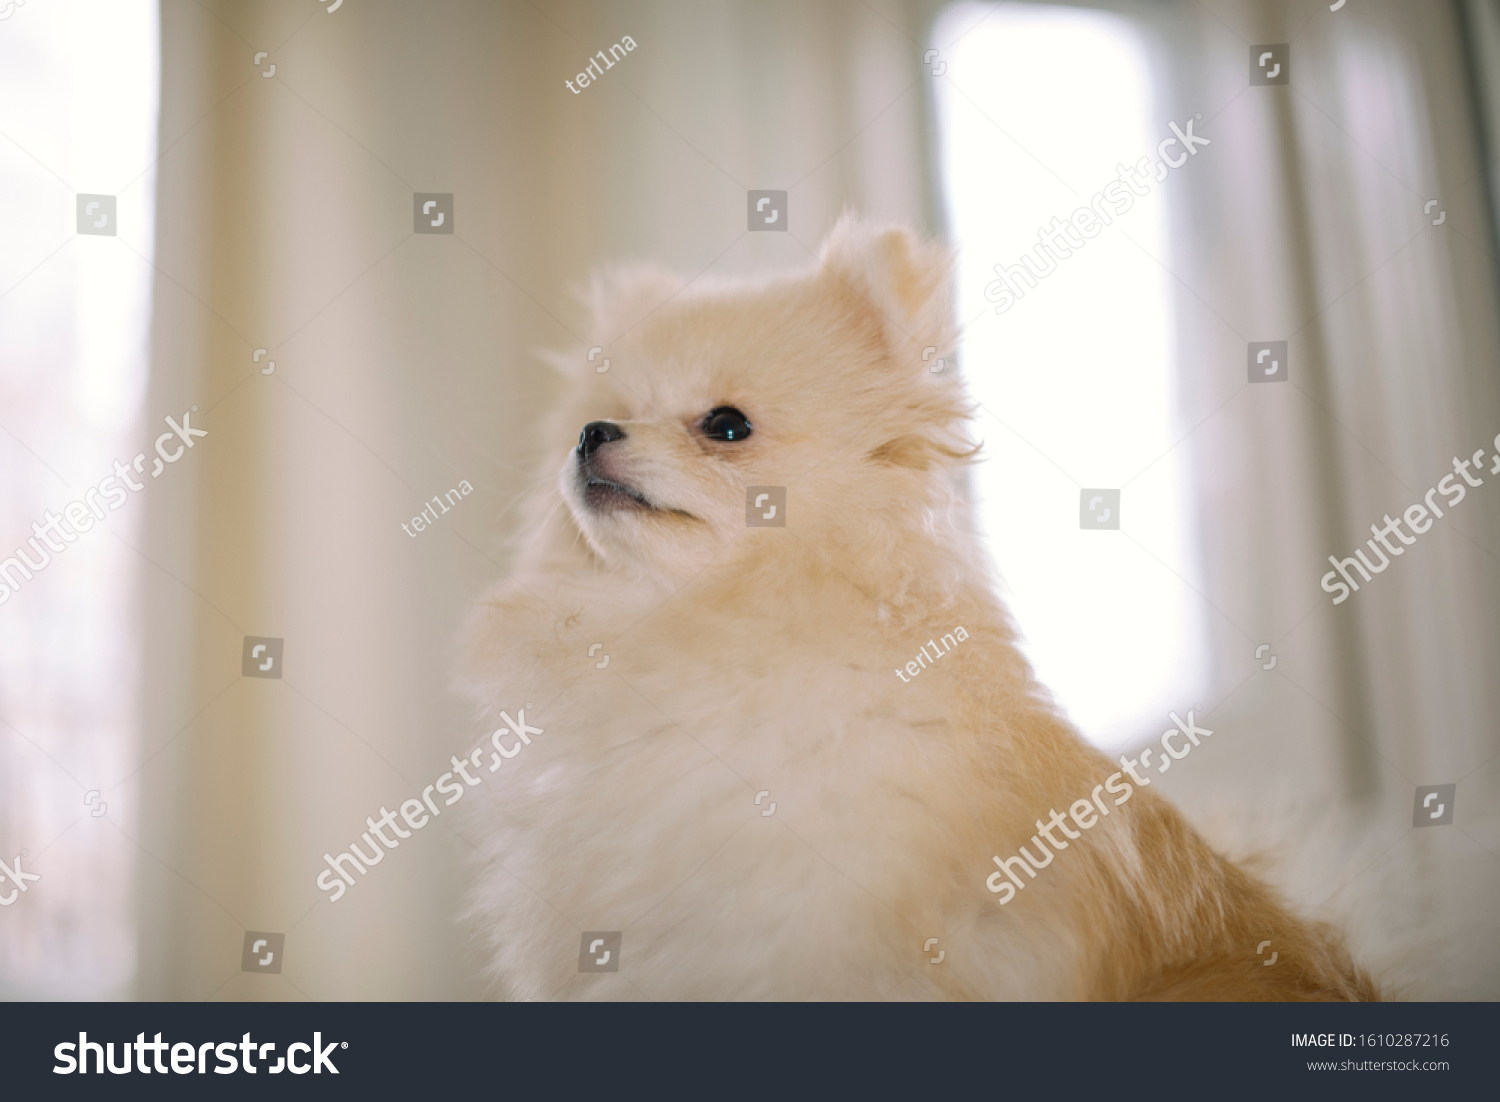 Beige White Baby Chihuahua Pomeranian Puppy Stock Photo Edit Now 1610287216